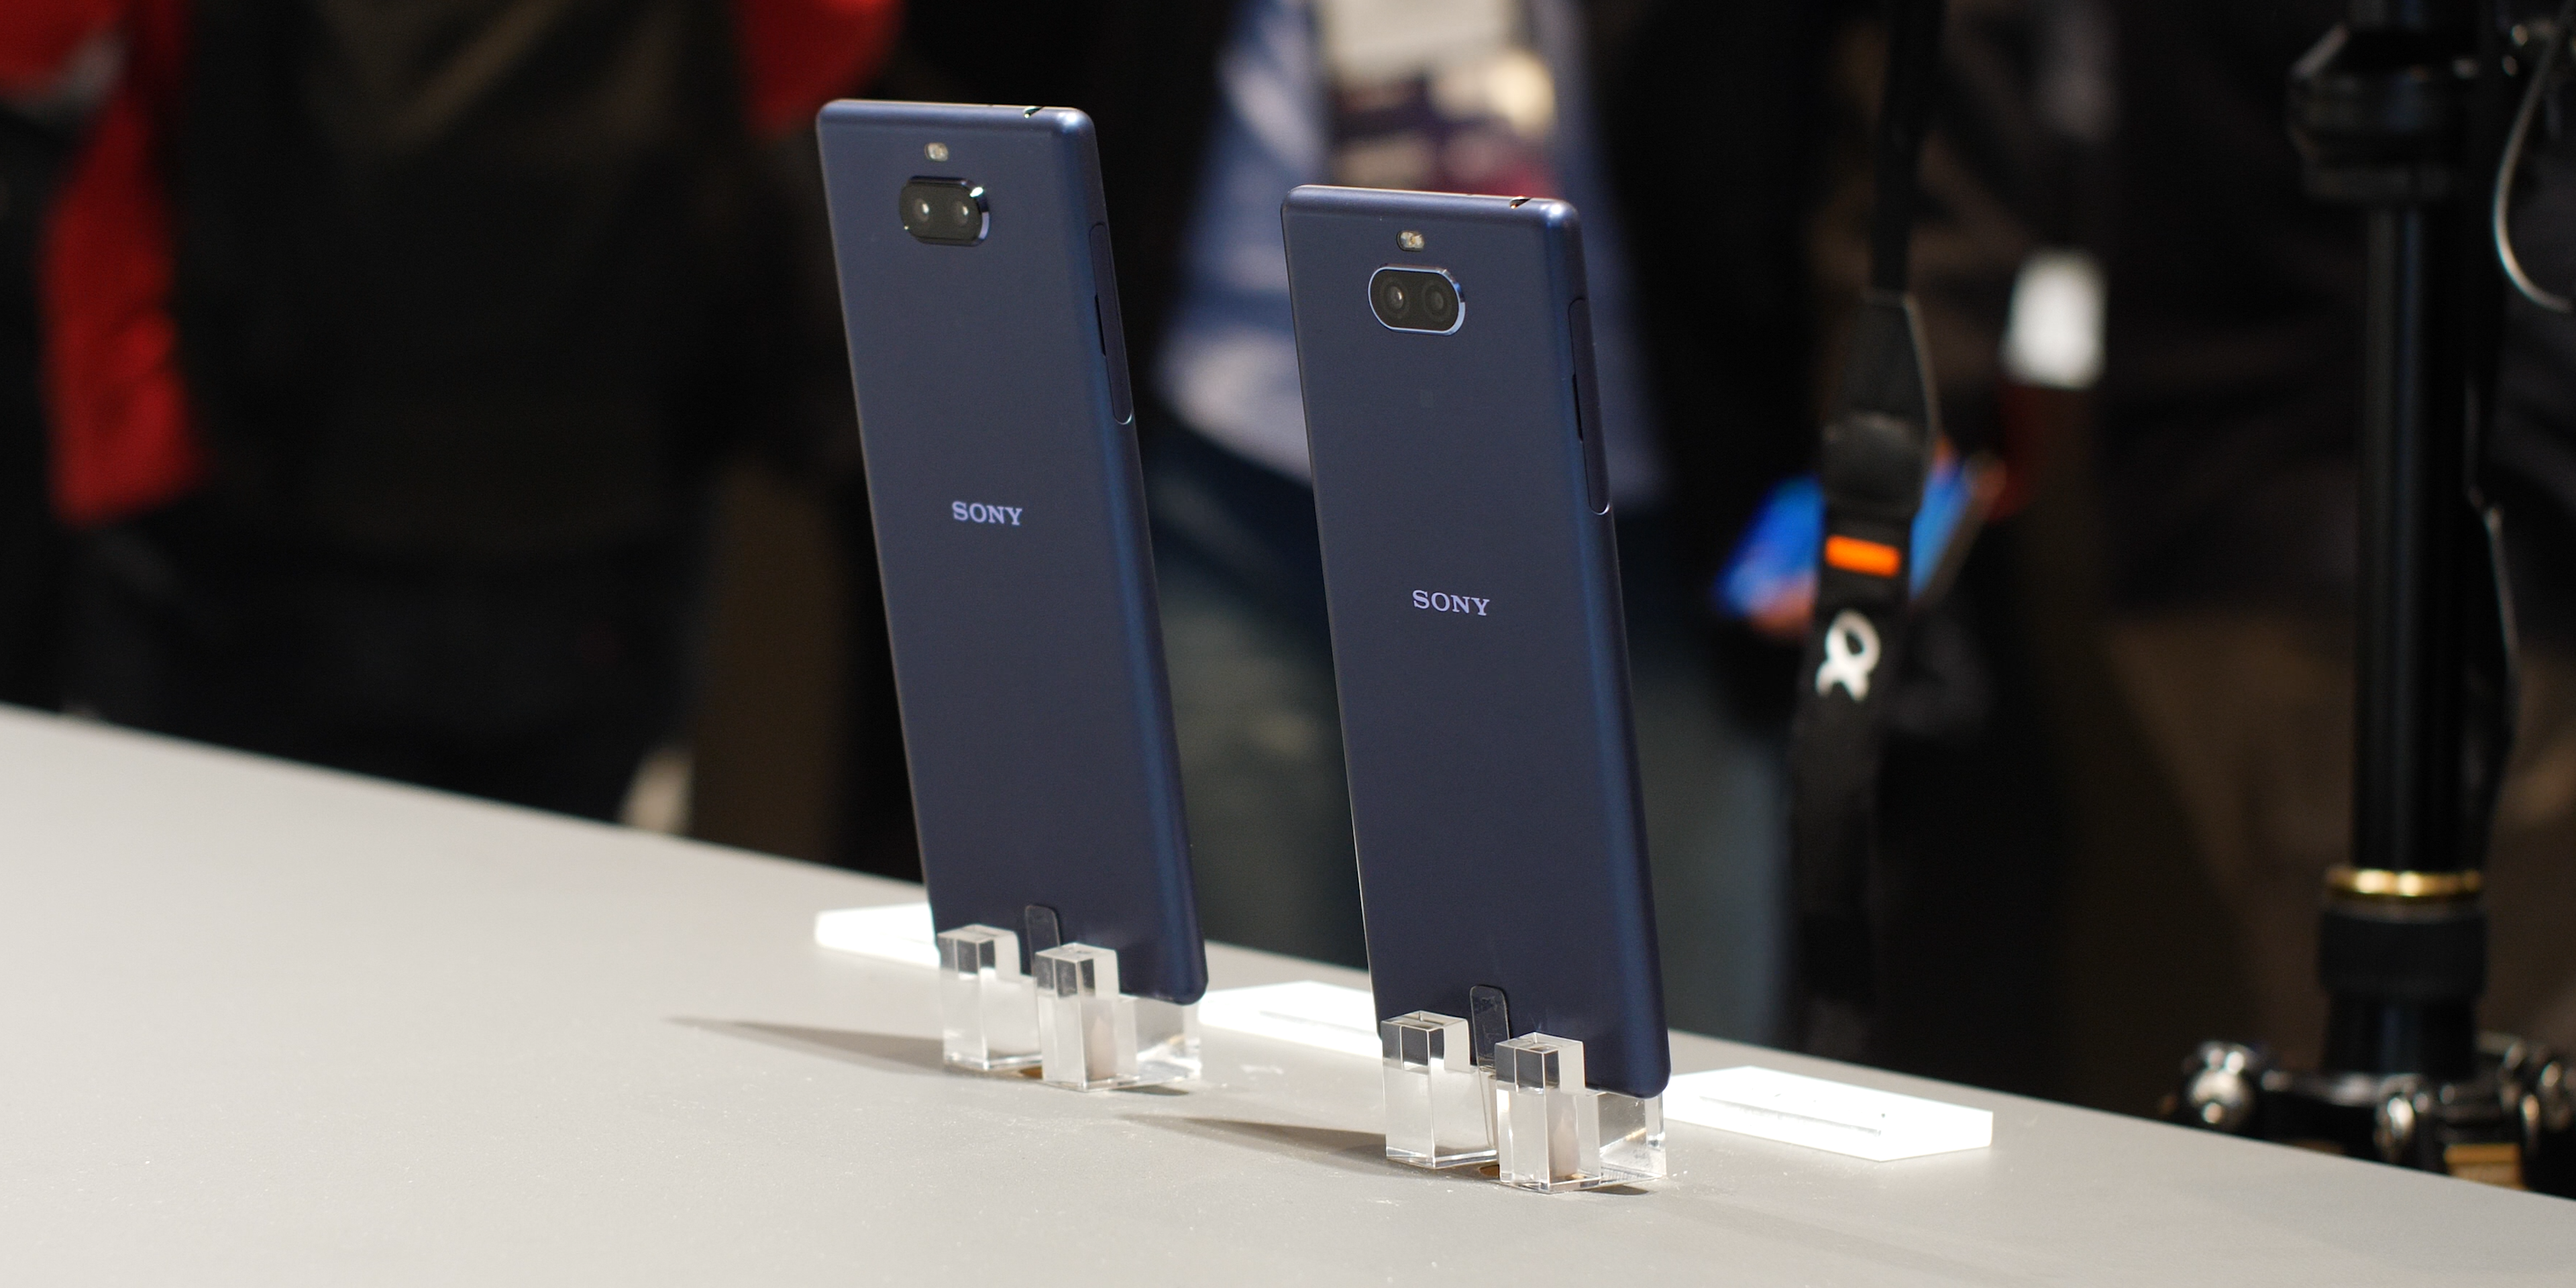 Sony Xperia 1, Xperia 10 and Xperia 10 Plus hands-on